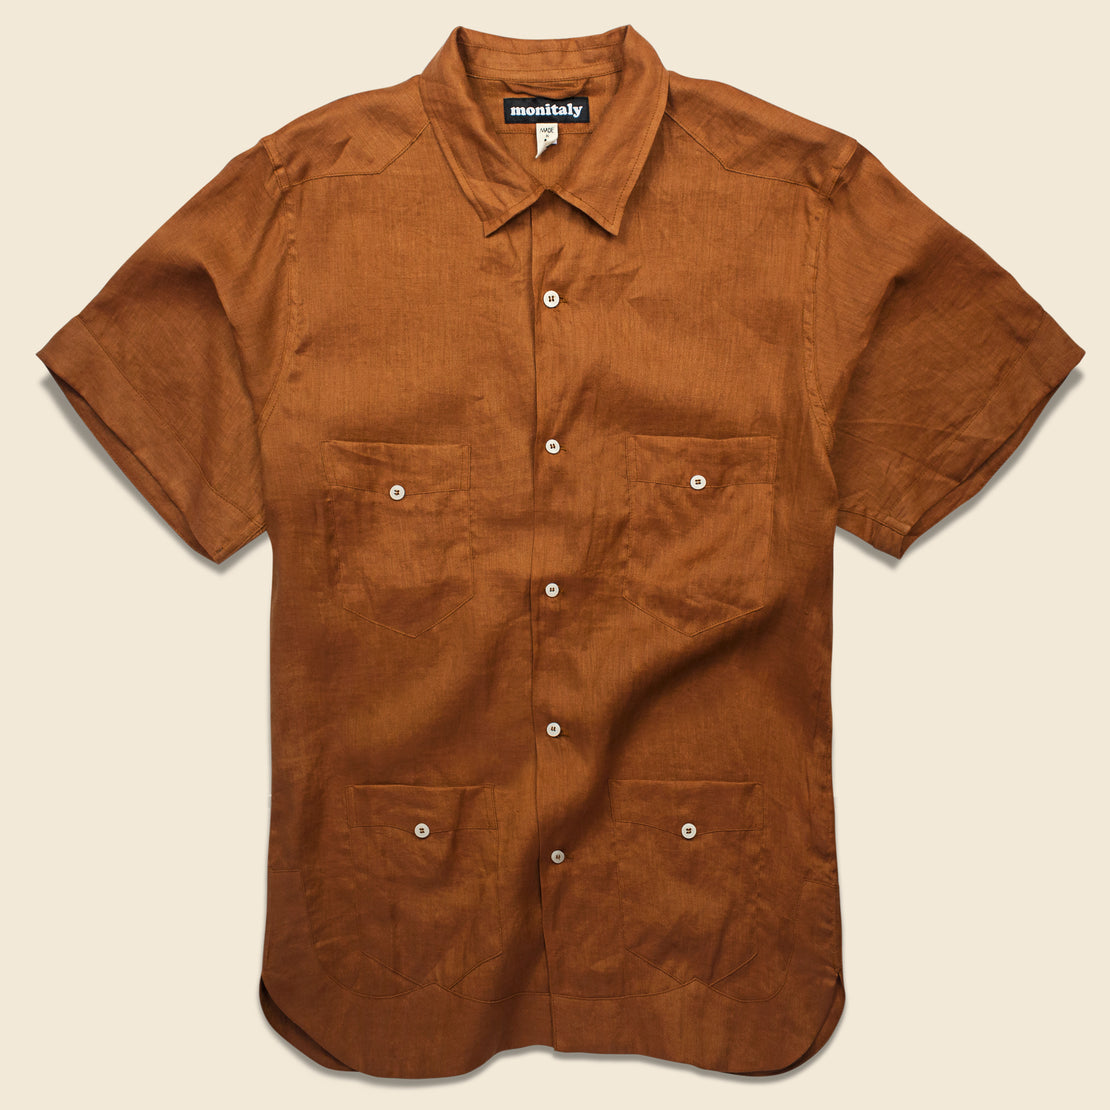 Monitaly Linen Guayabera Shirt - Brown